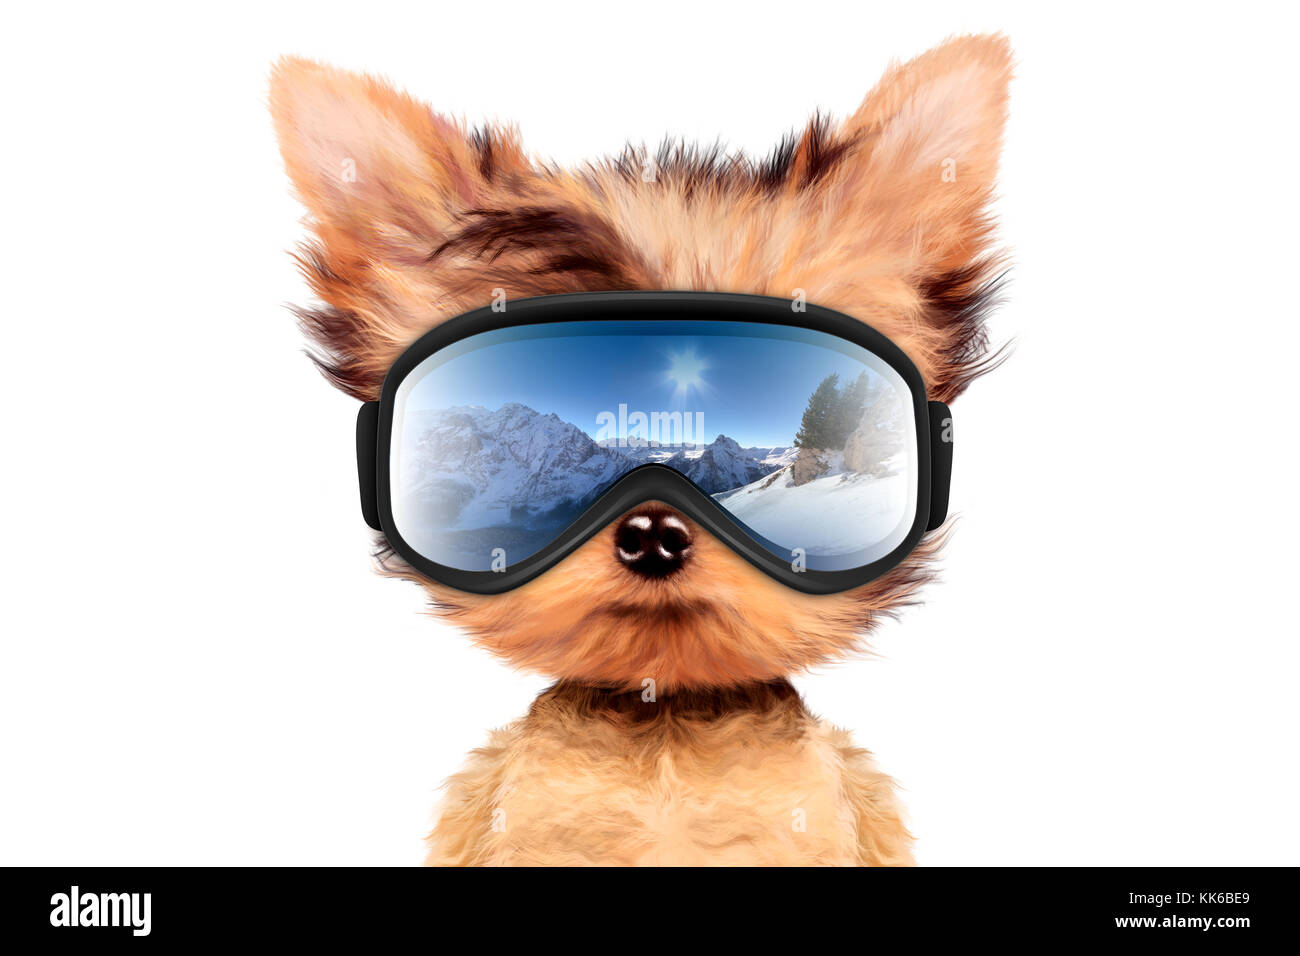 Funny Dog wearing ski goggles  Winter glass mask with